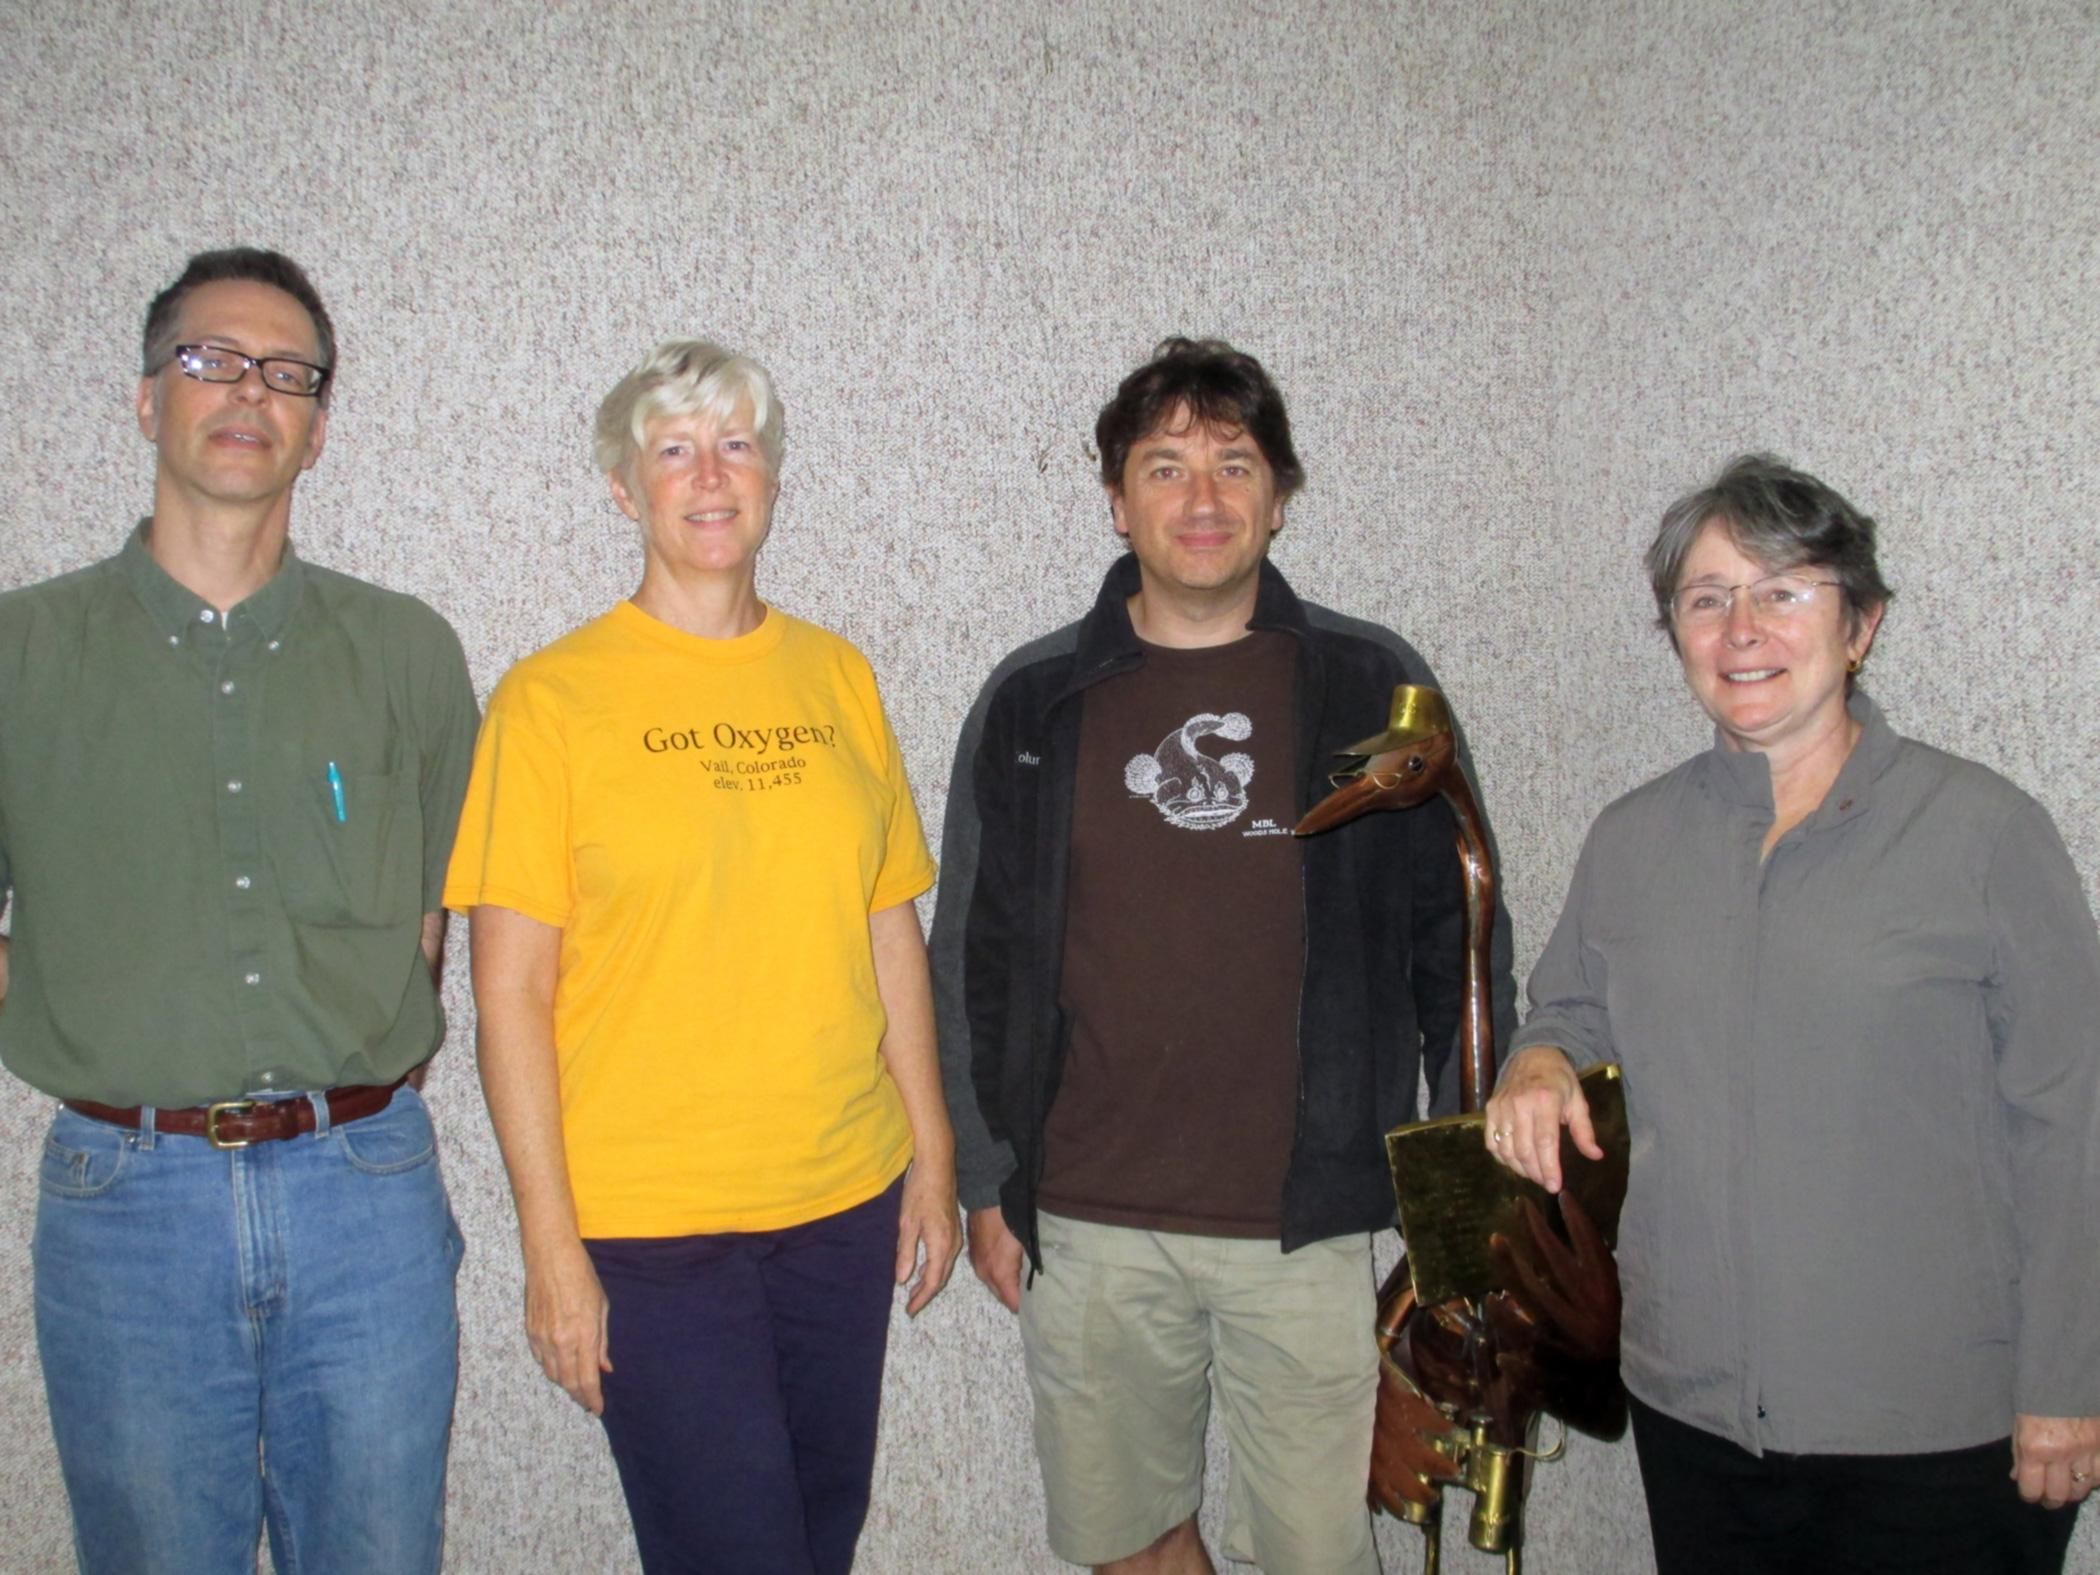 L to R: Todd Kaufmann, Fluff Berger, Richard Jacob, Barbara DeRiso (Scott Pavelle, not present)